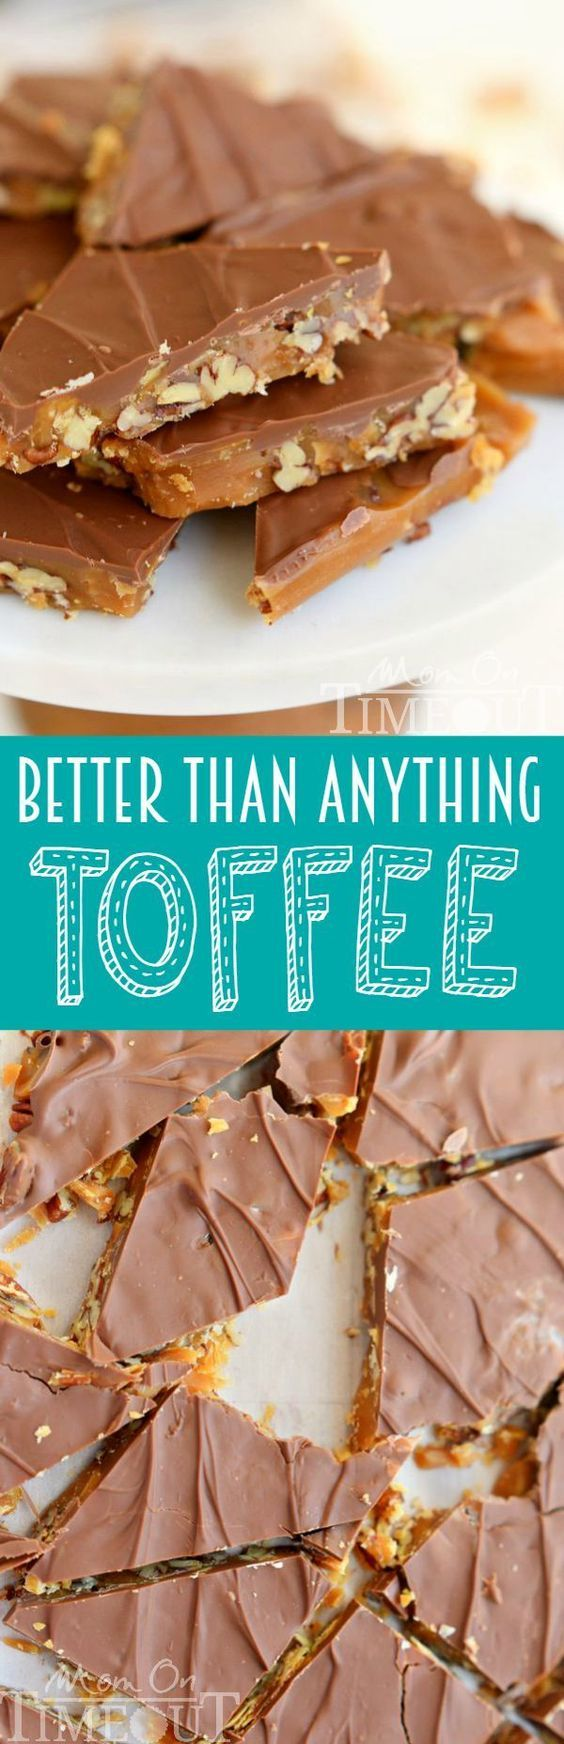 20 best Candy images on Pinterest | Candy bars, Treats and Chocolate ...